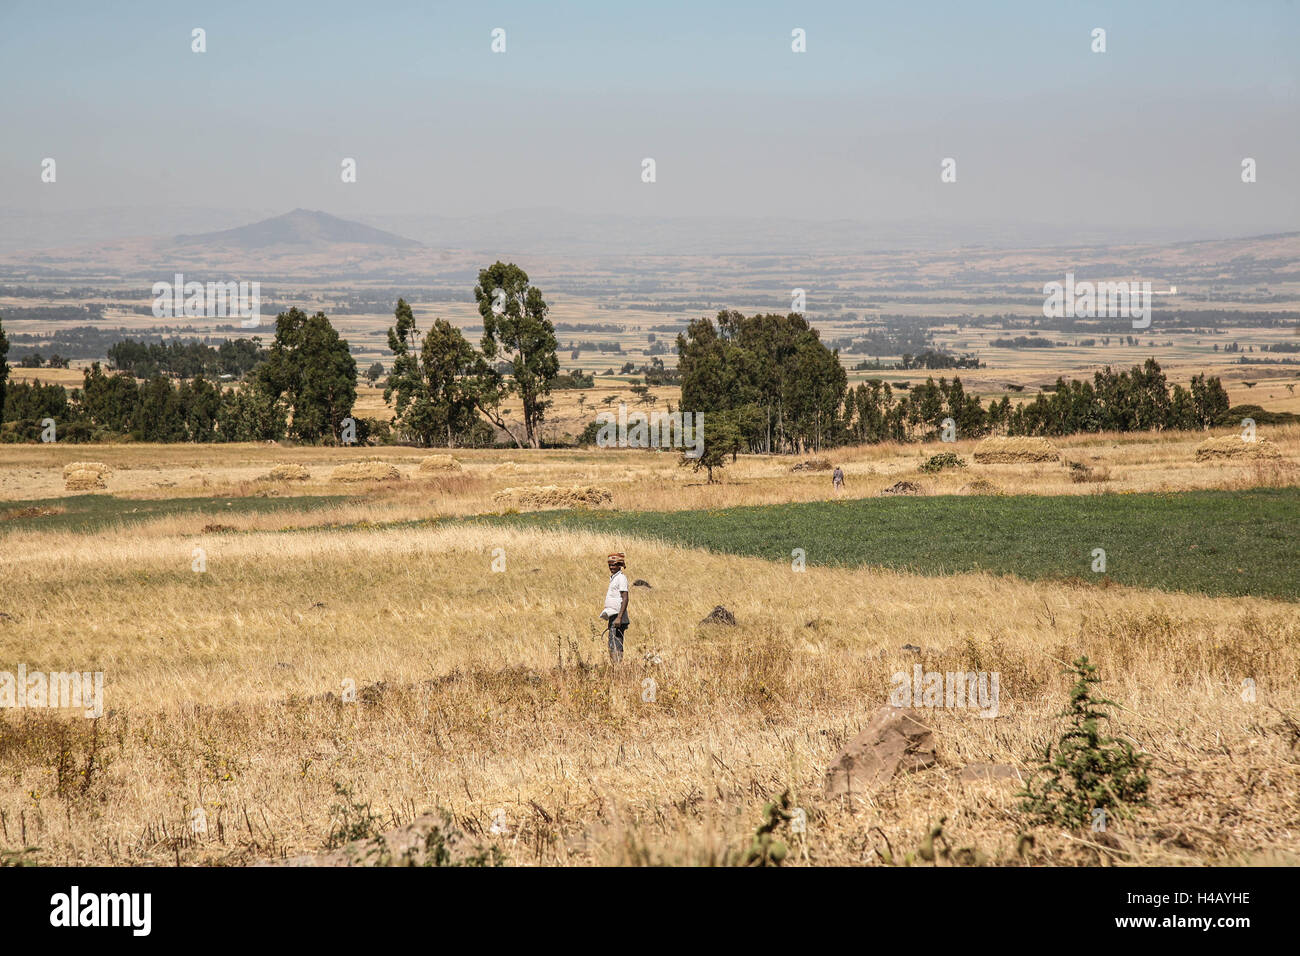 From Arba Minch to Addis Ababa Stock Photo